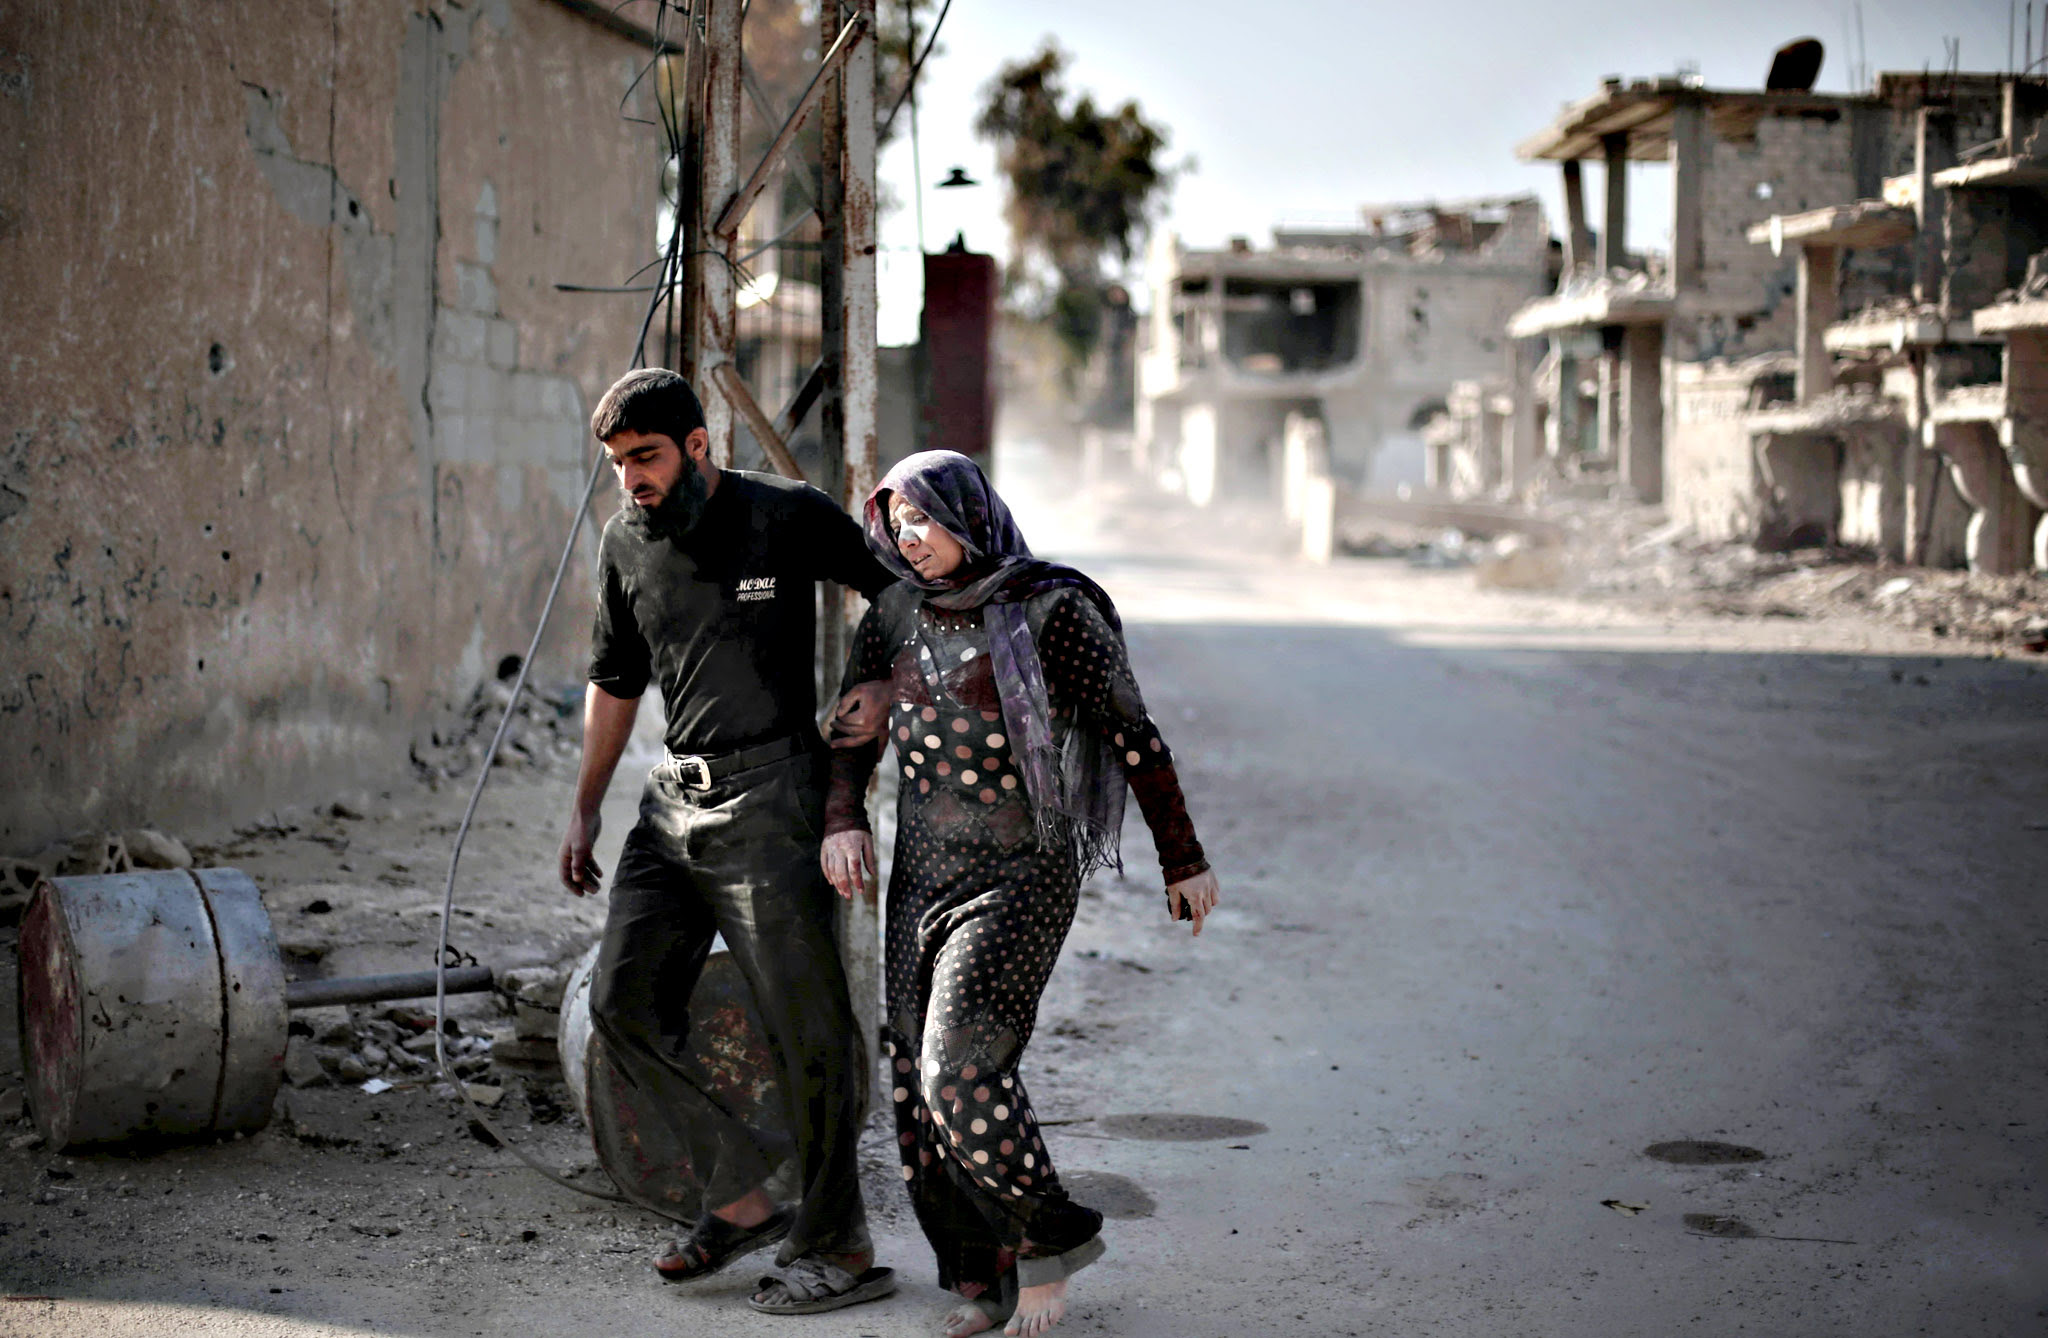 "A Syrian man escorts his injured wife following reported air strikes by regime forces on the town of al-Nashabiyah in the eastern Ghouta region, a rebel stronghold east of the capital Damascus, on December 14, 2015. United Nations aid chief Stephen OBrien said that the ""indiscriminate attacks"" against civilians in Damascus and the surrounding region were ""unacceptable"" at the end of a visit to Syria."